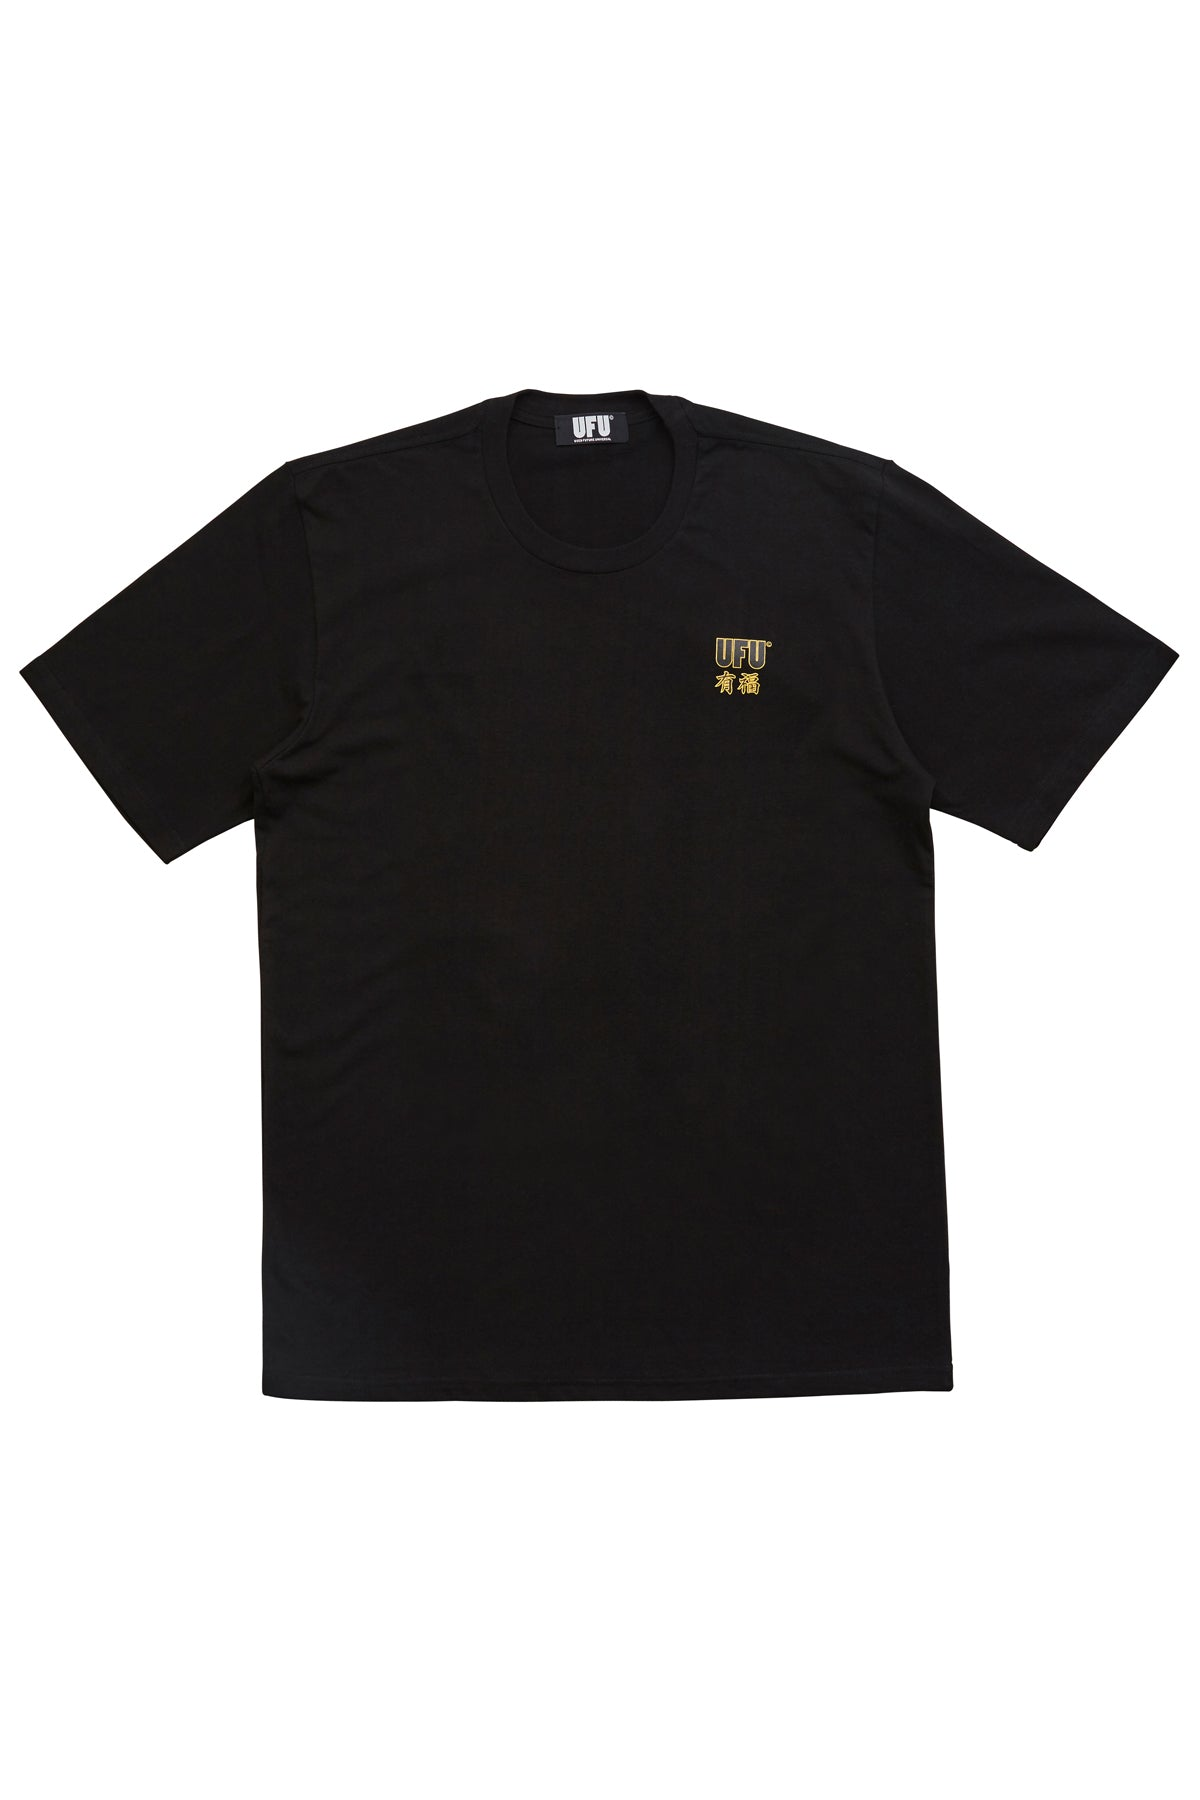 BAEKDU T-SHIRT_BLACK